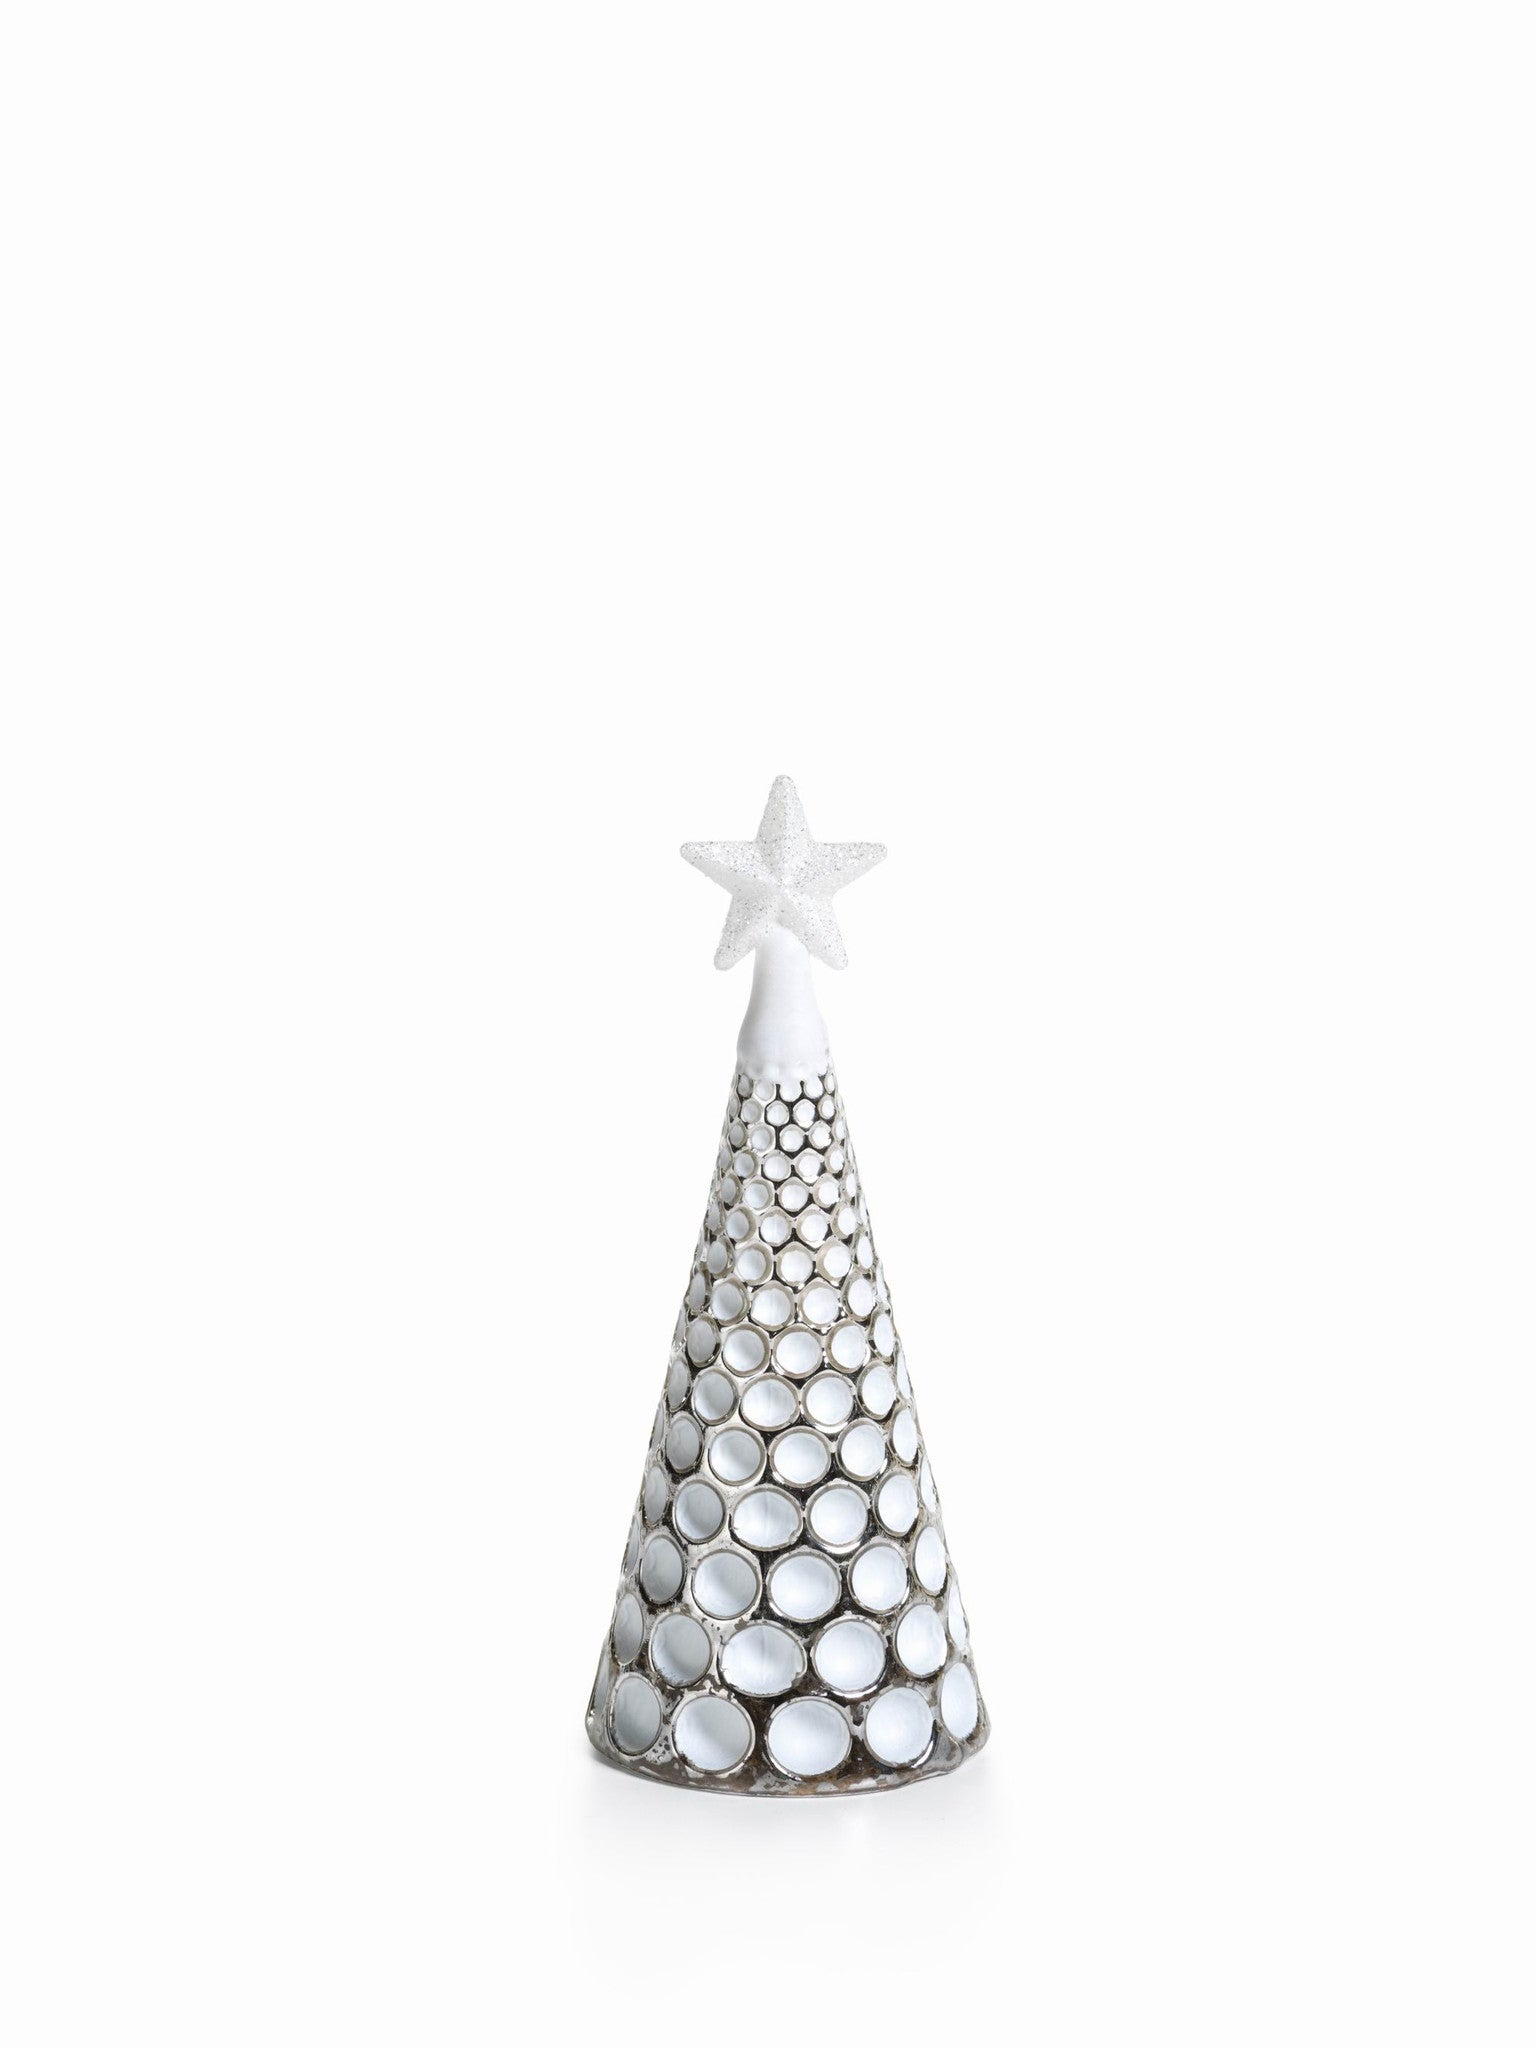 LED Glass Decorative Tree - Silver - Set of 6 - Small / Dimple Cut - CARLYLE AVENUE - 15